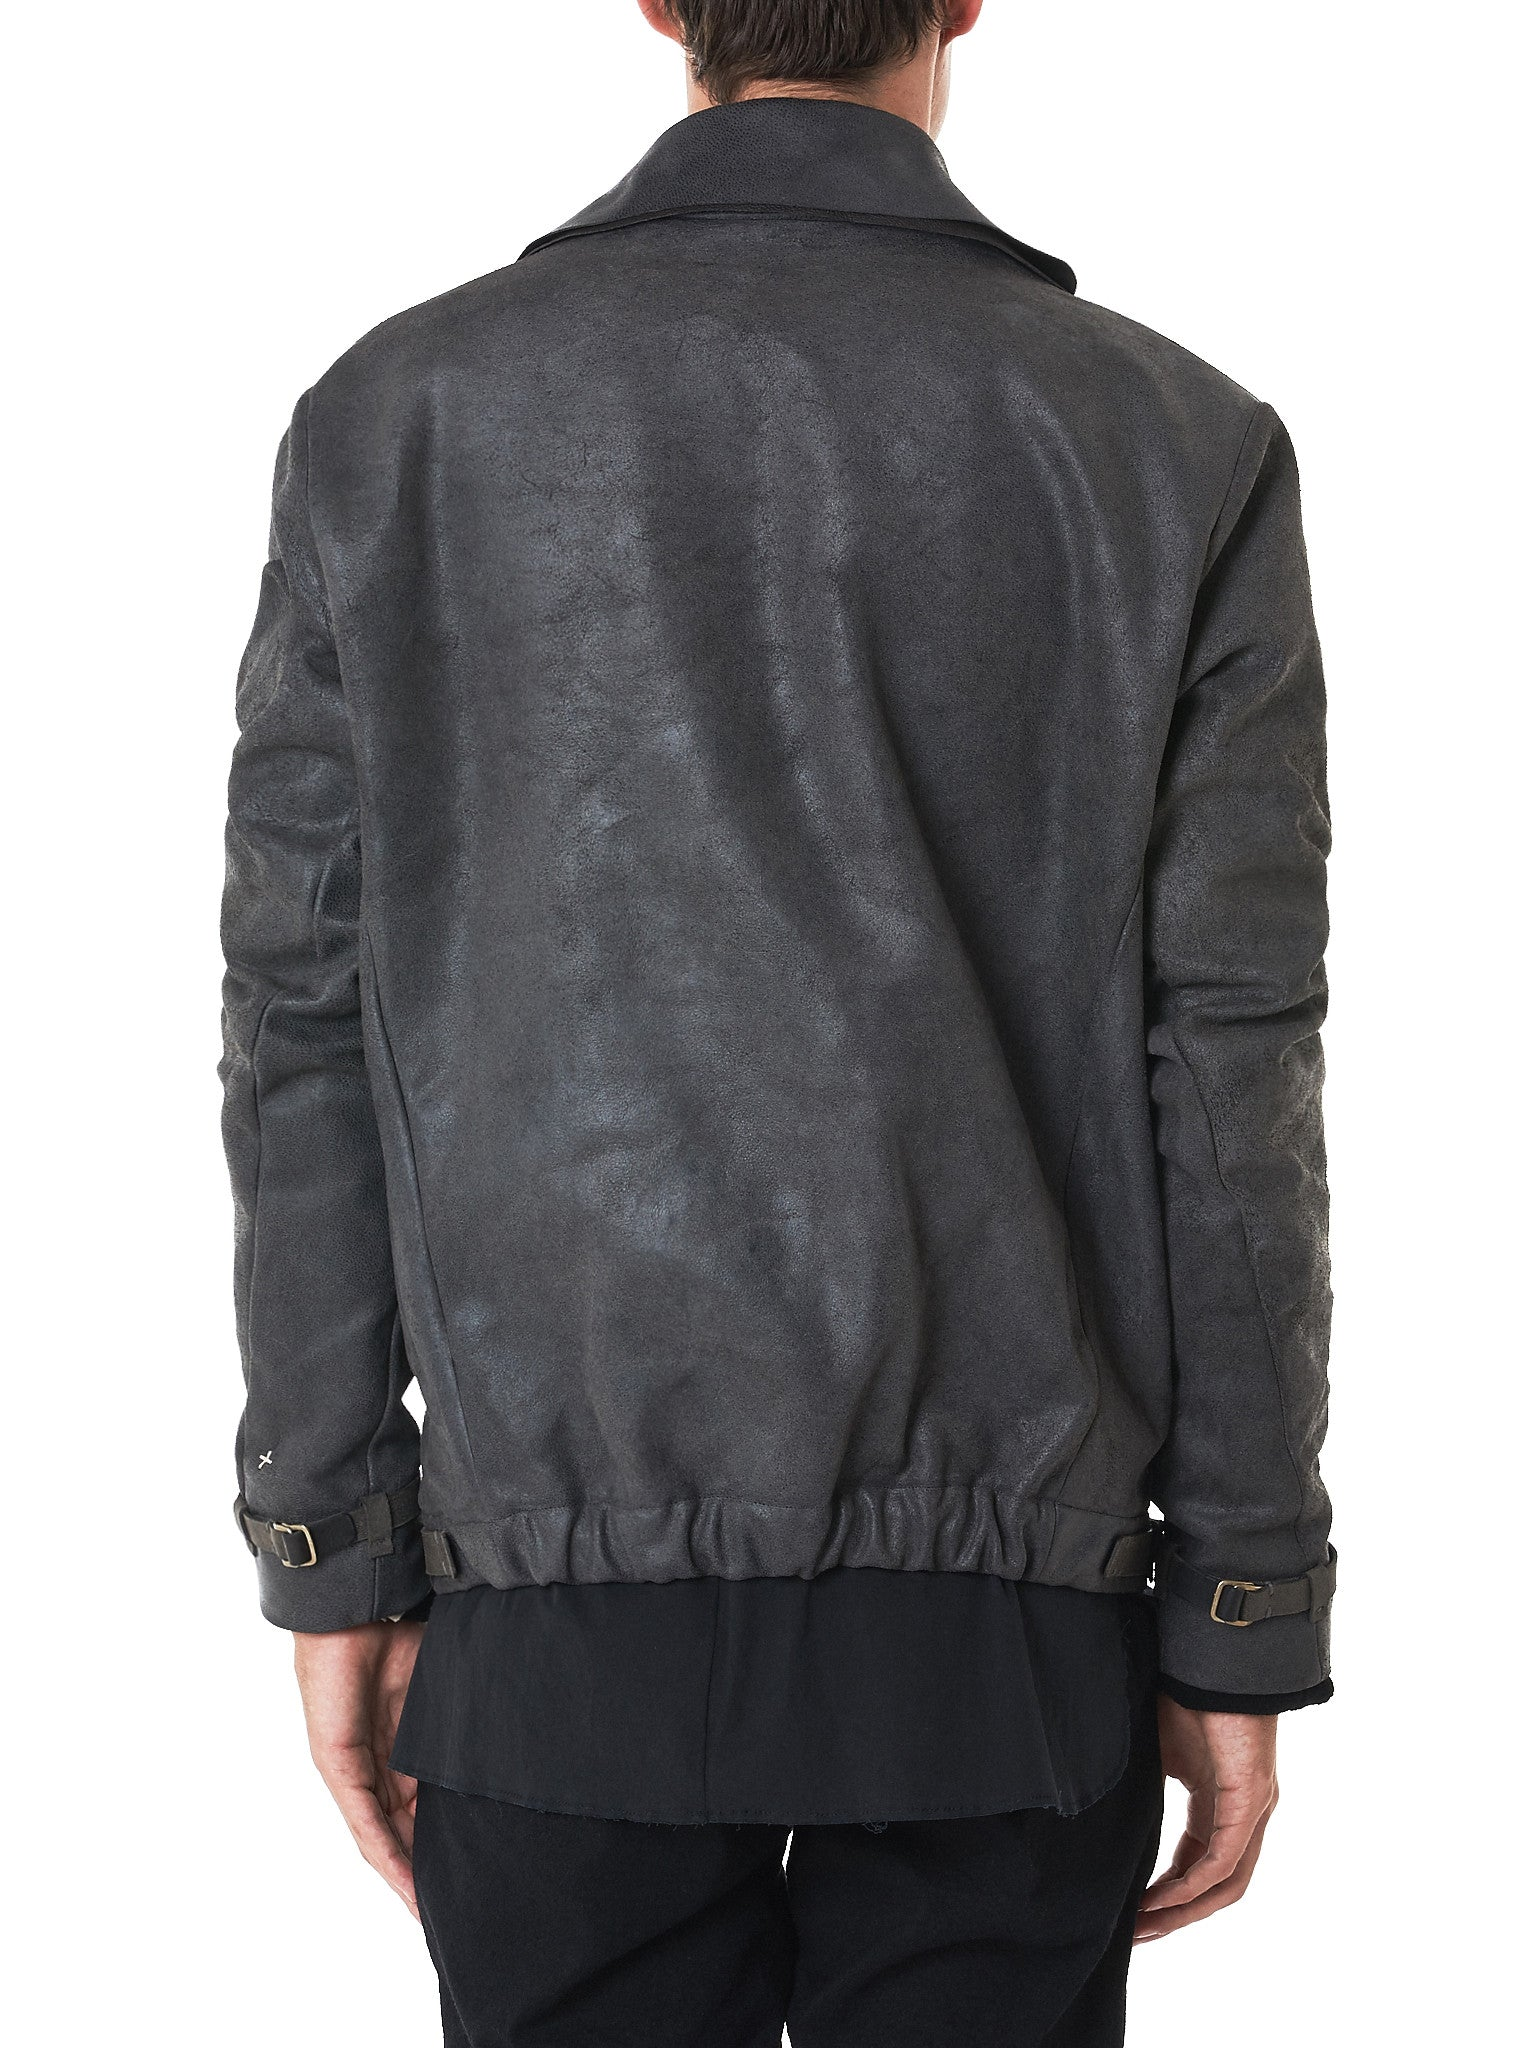 MA+/Hlorenzo- waxed leather jacket rear view